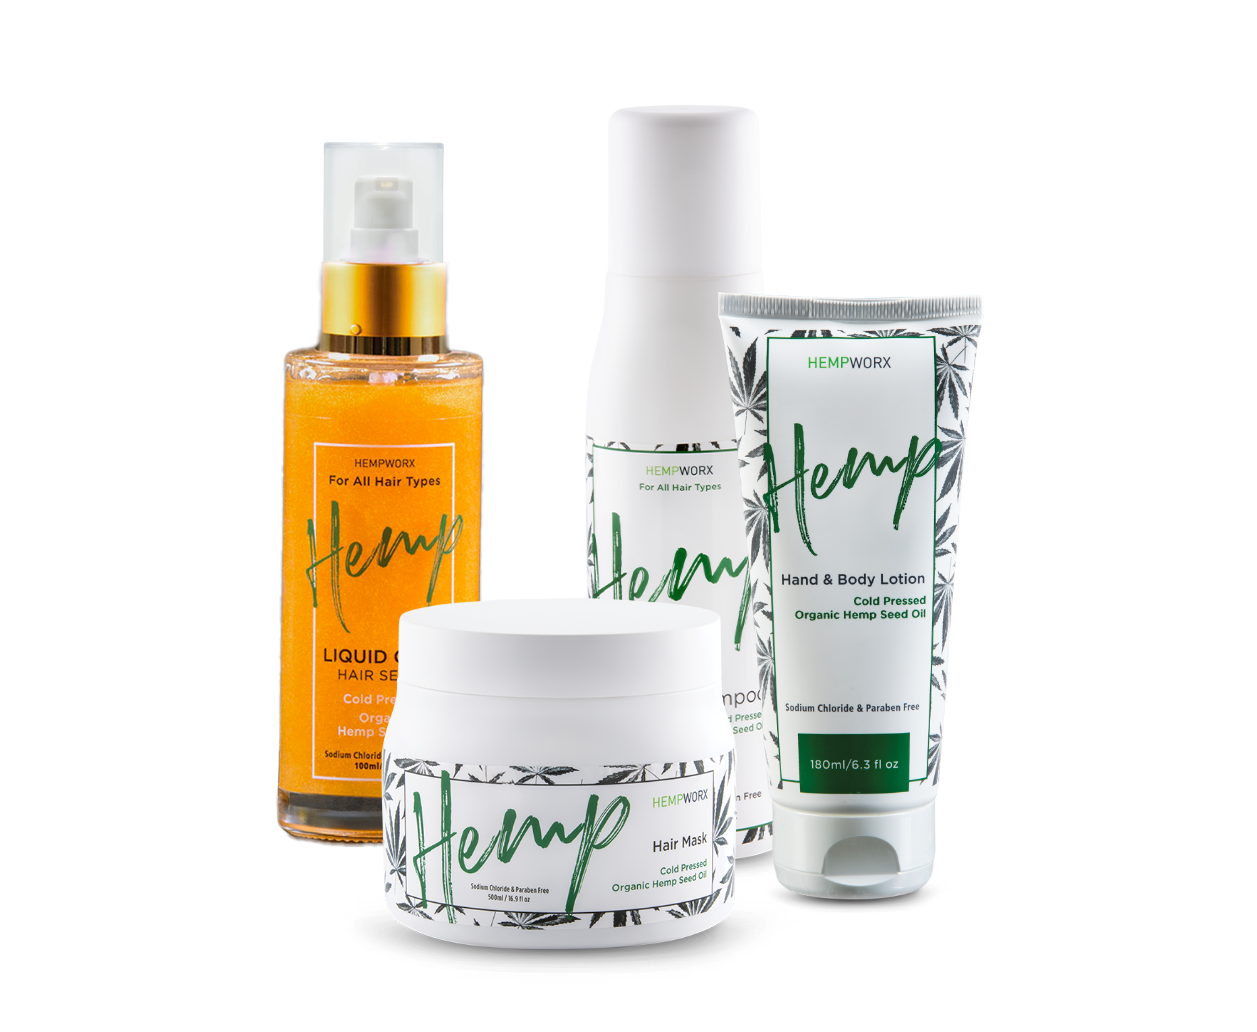 hempworx hair care and body lotion